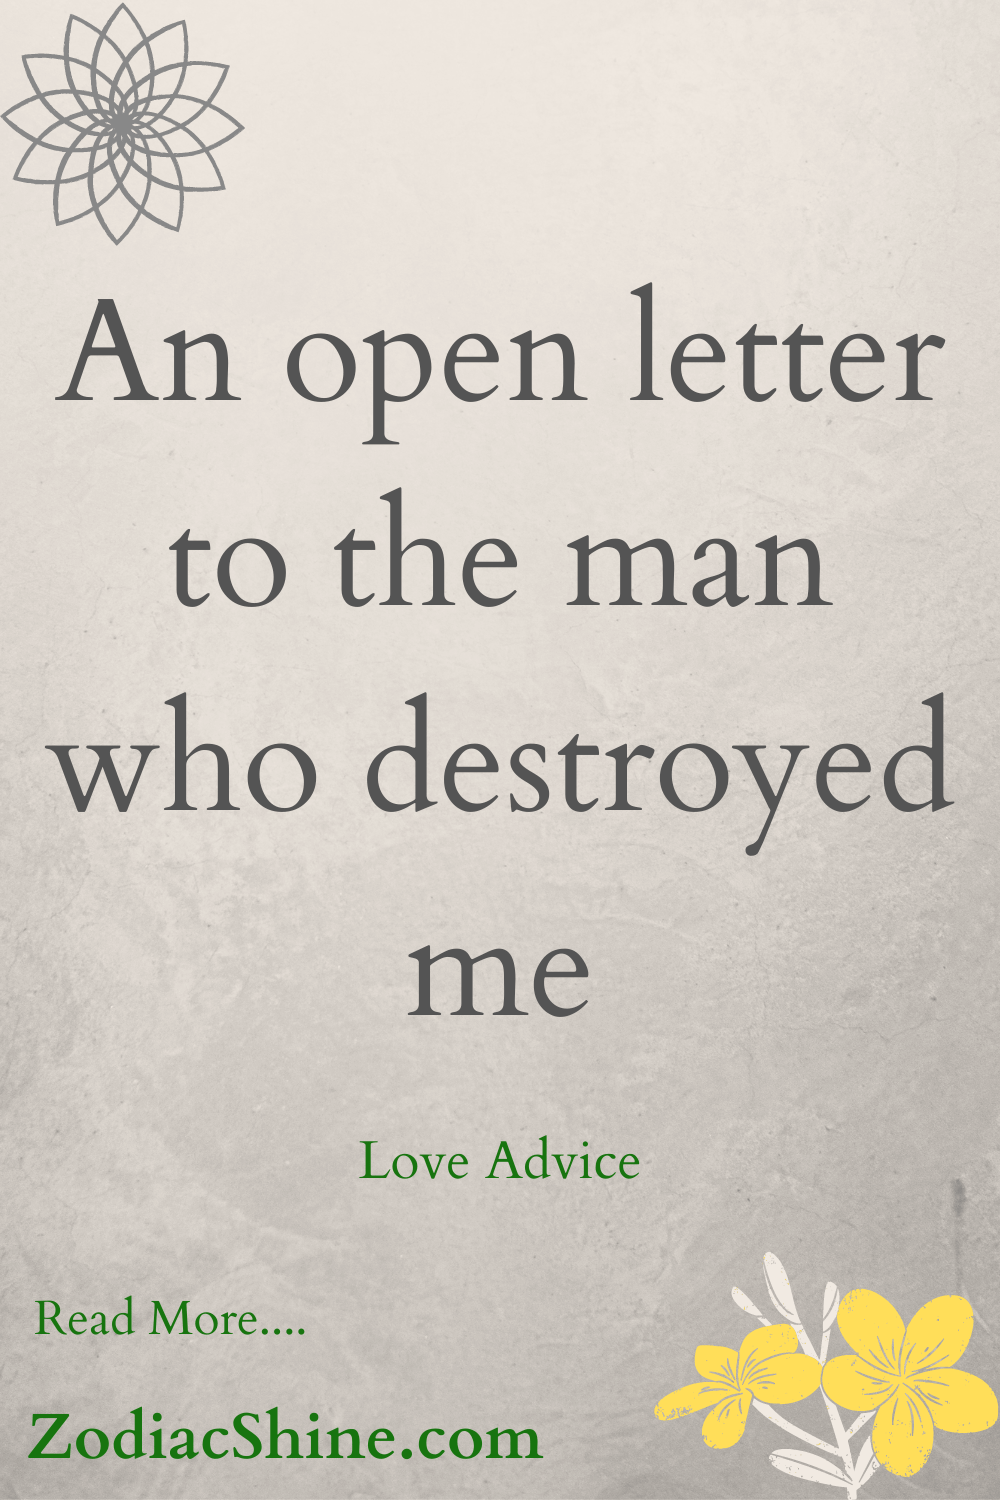 An open letter to the man who destroyed me